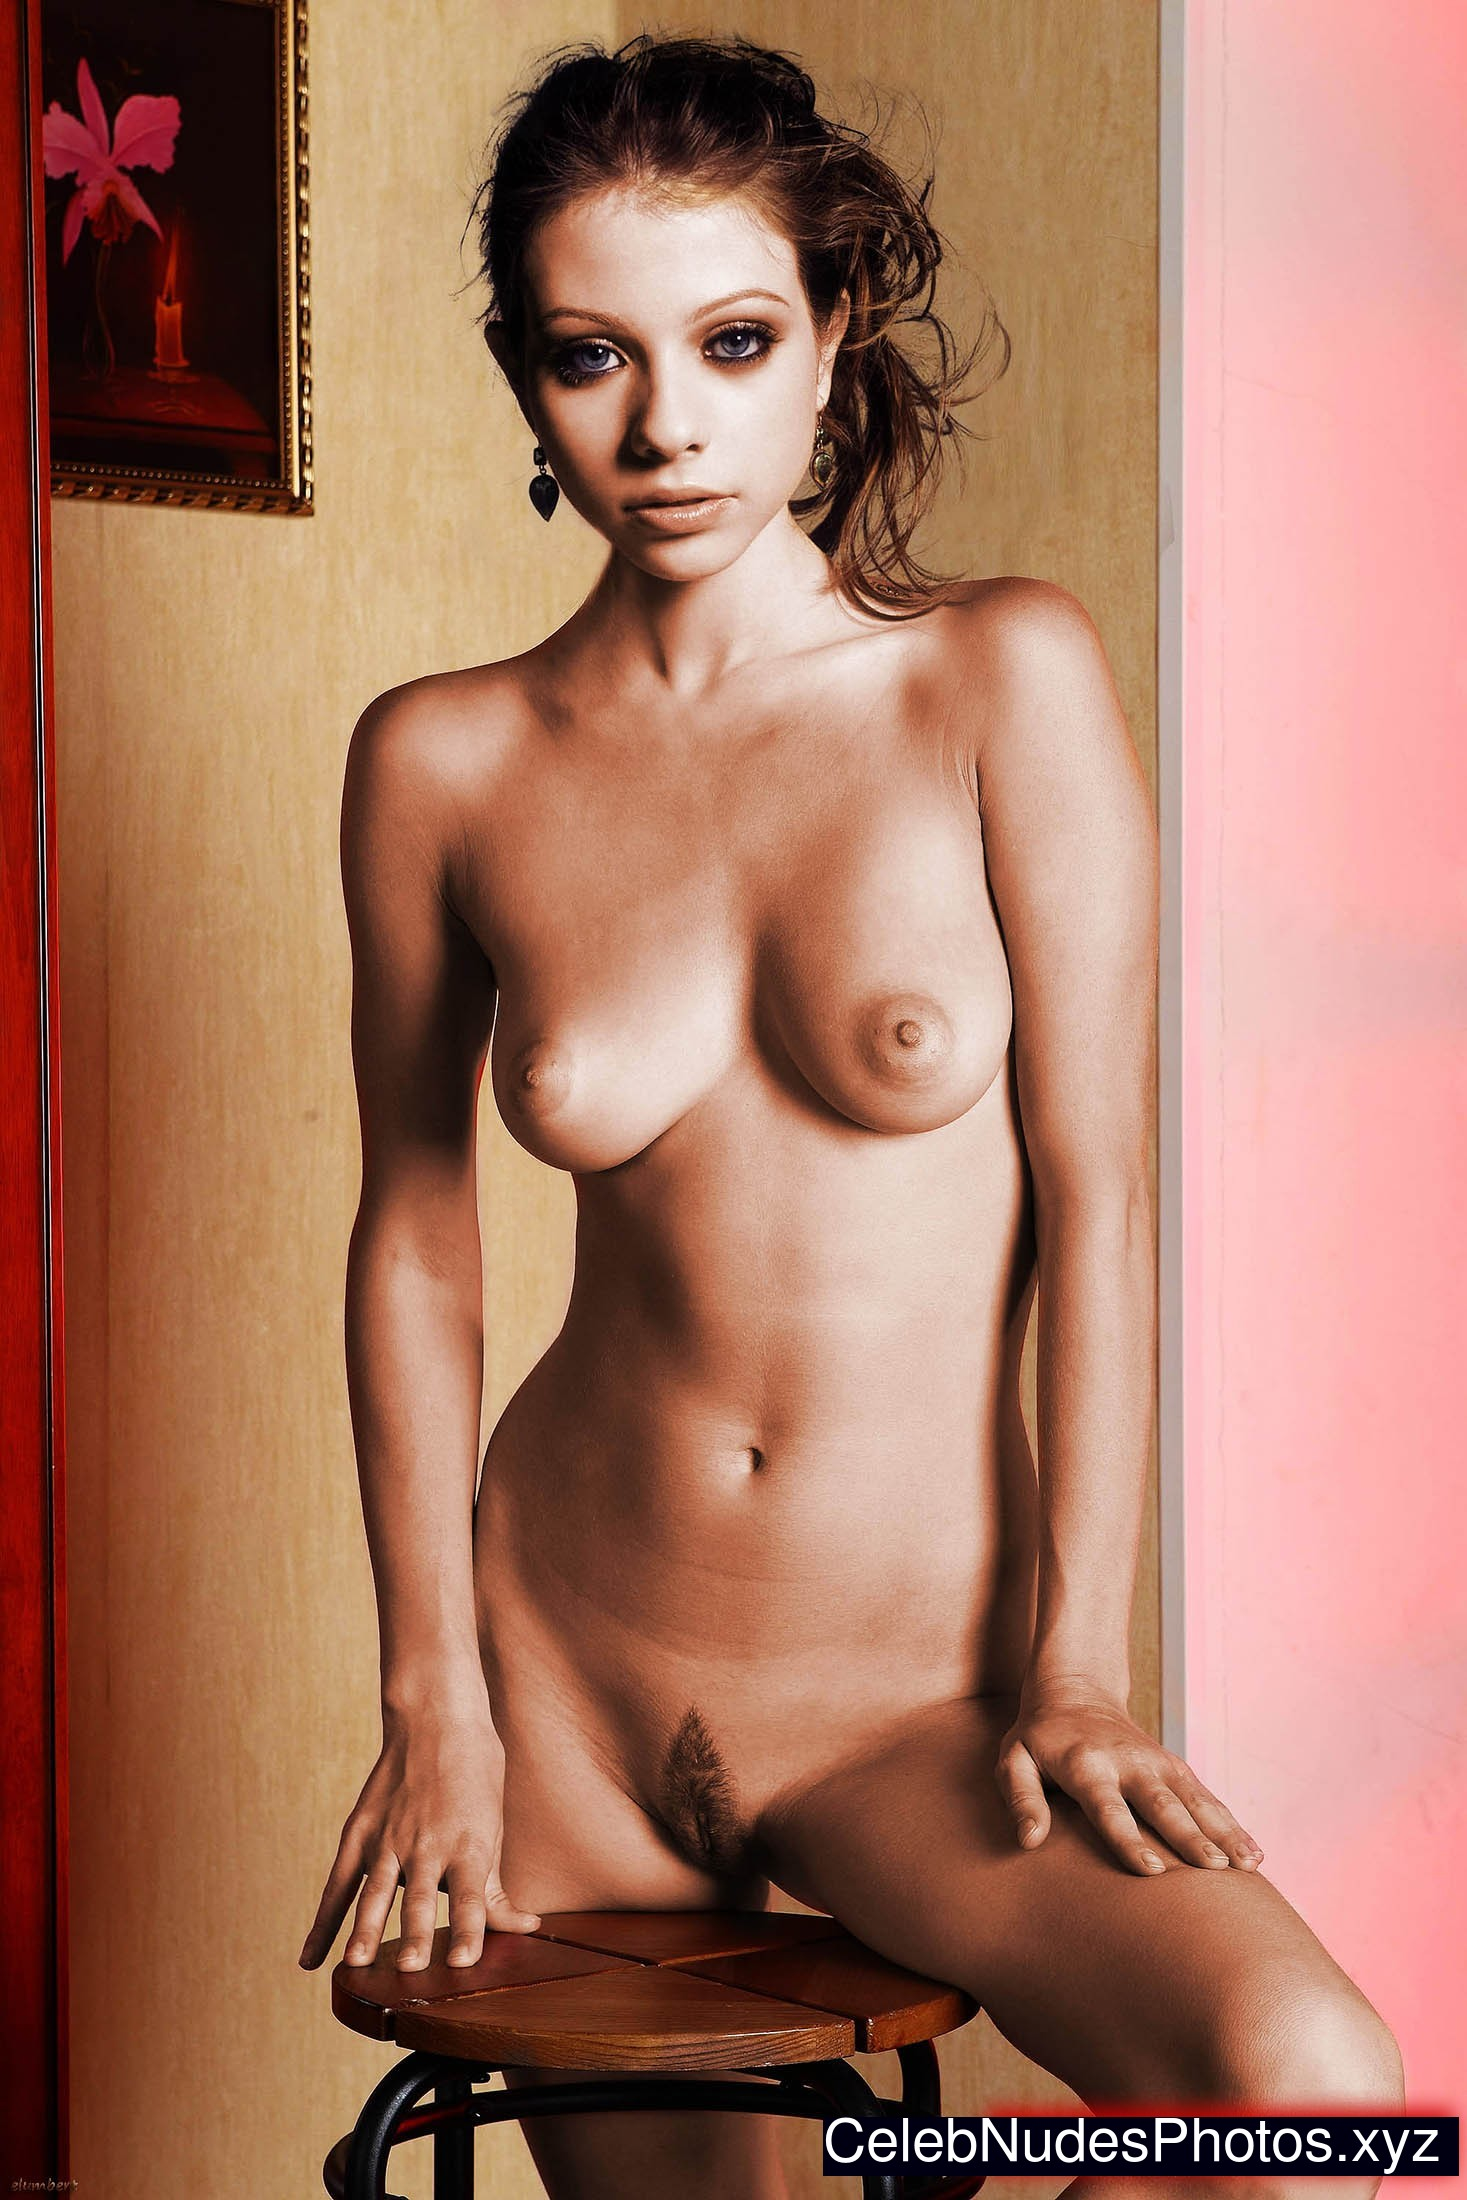 Consider, Has michelle trachtenberg nude opinion you